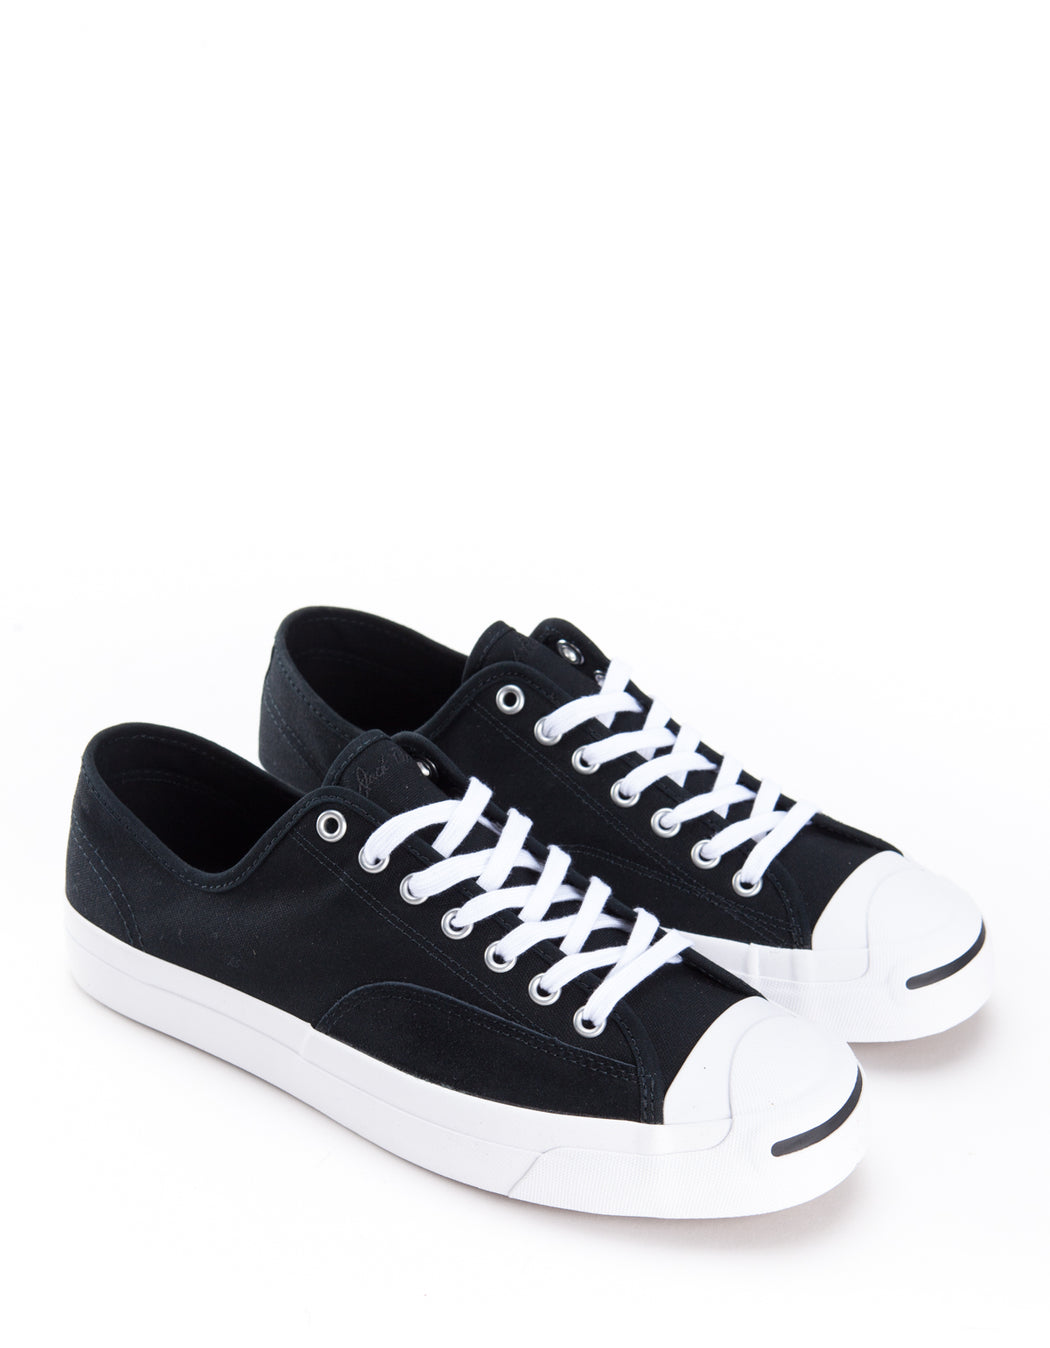 7d0aa6f997cd ... discount code for converse jack purcell pro canvas low top ox black  227b3 fa865